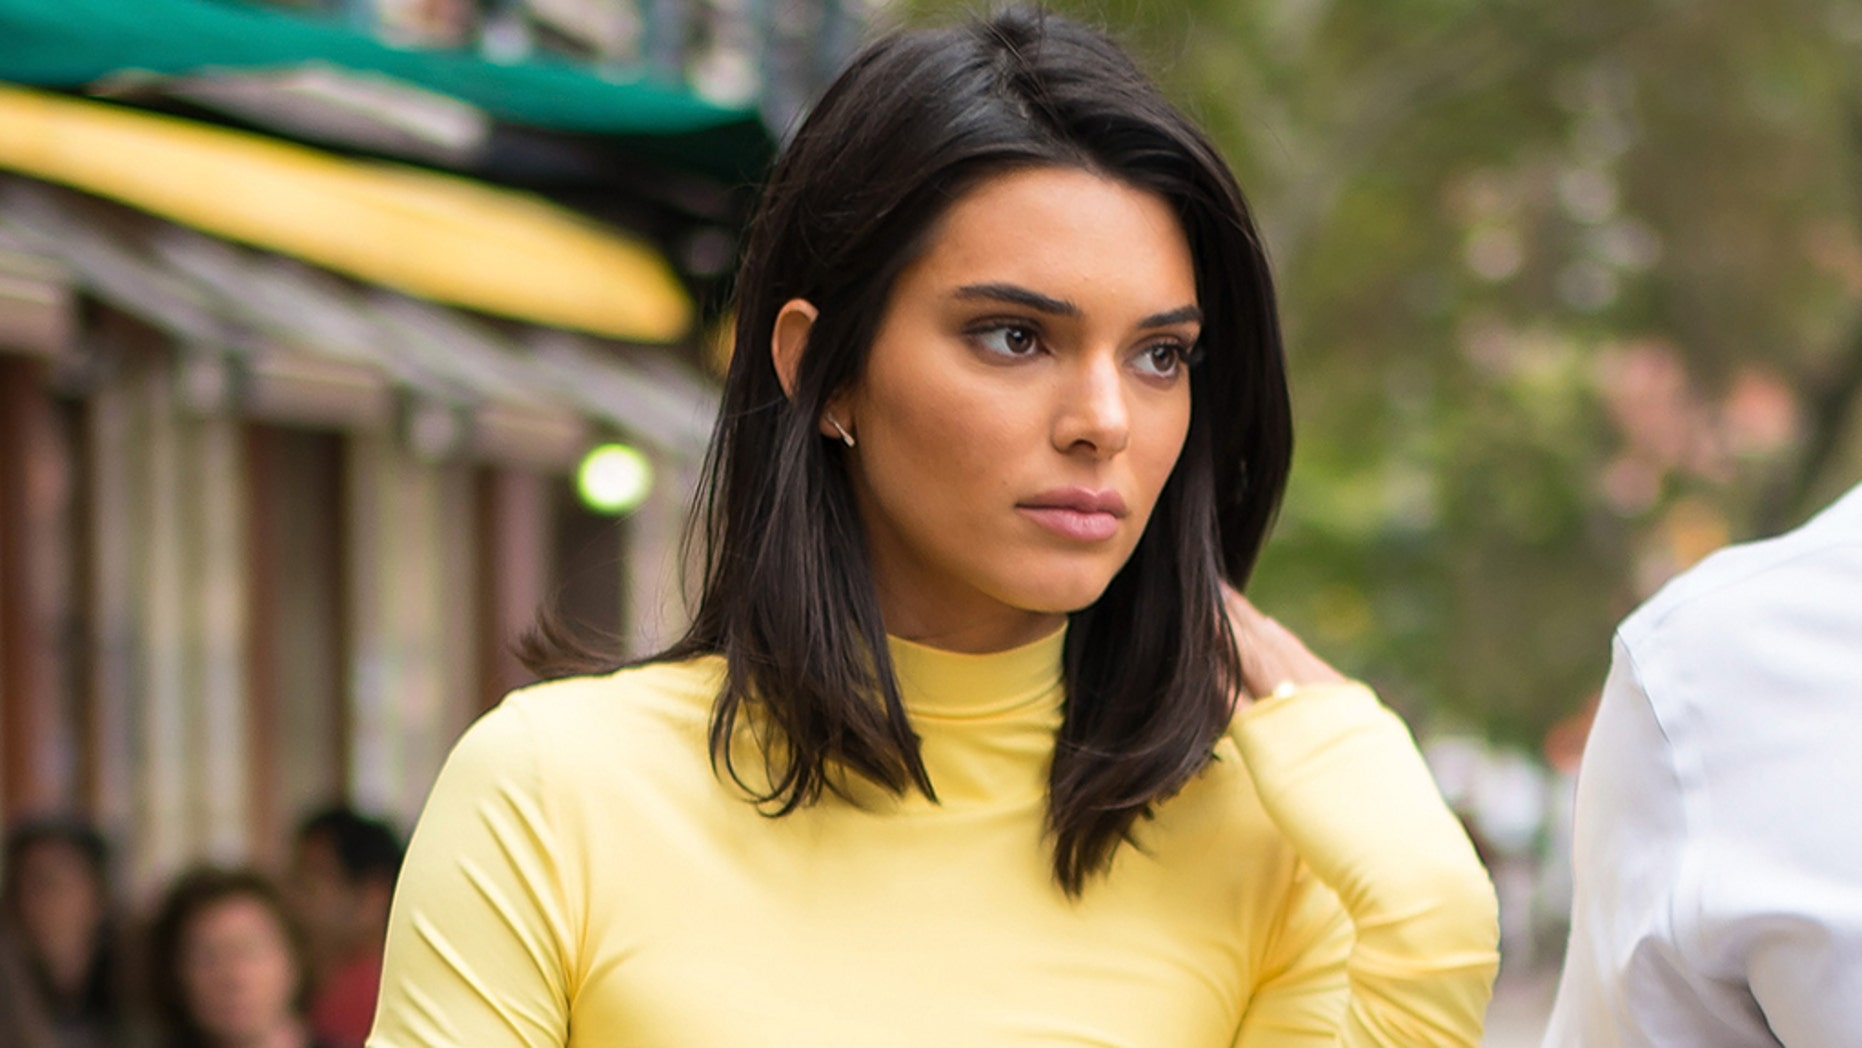 Kendall Jenner talks about her battle with acne, faces BACKLASH